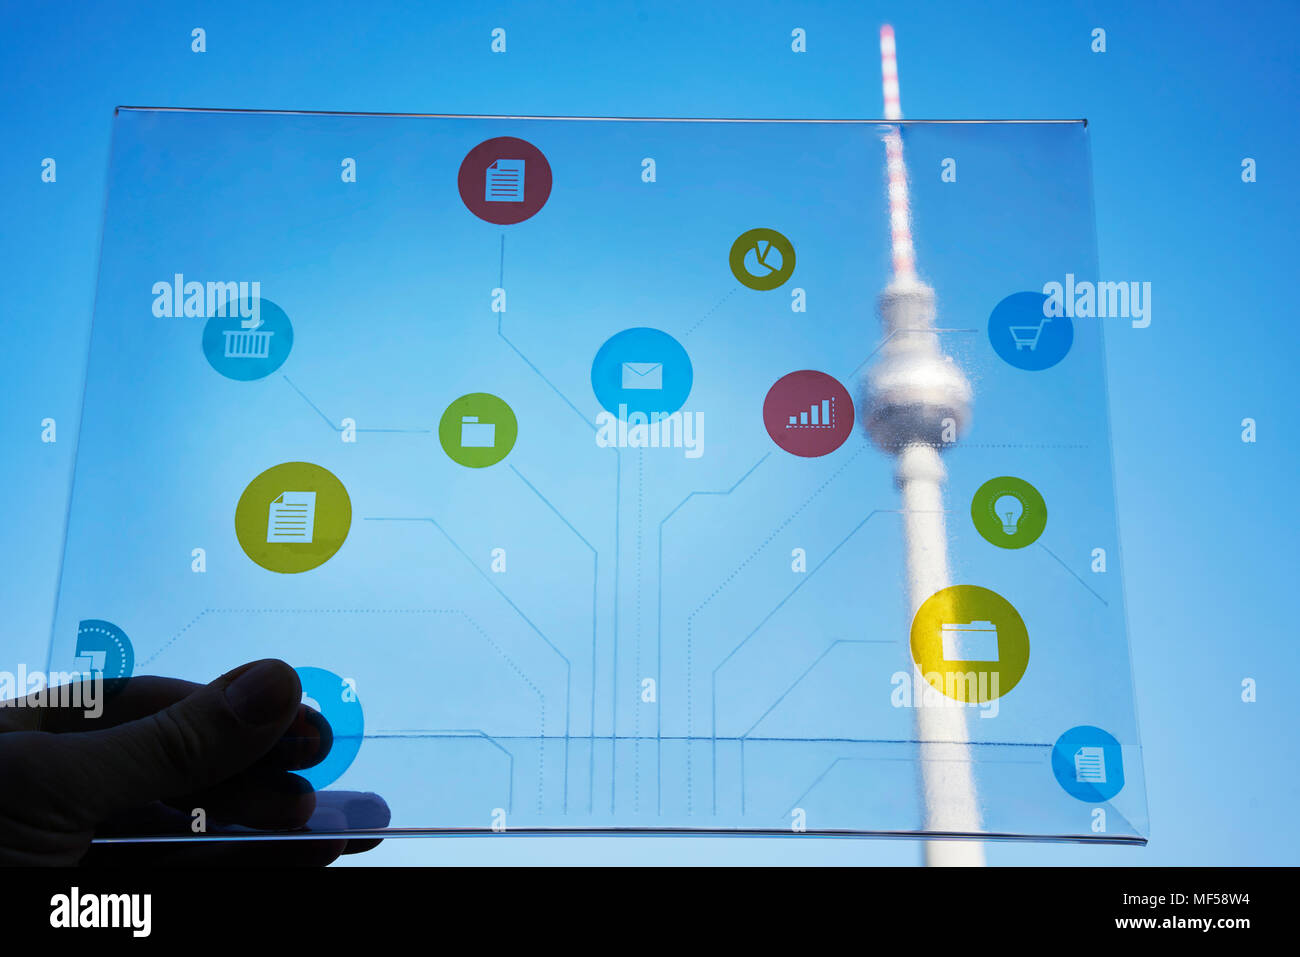 Germany, Berlin, hand holding futuristic device with digital icons in front of Tv tower - Stock Image